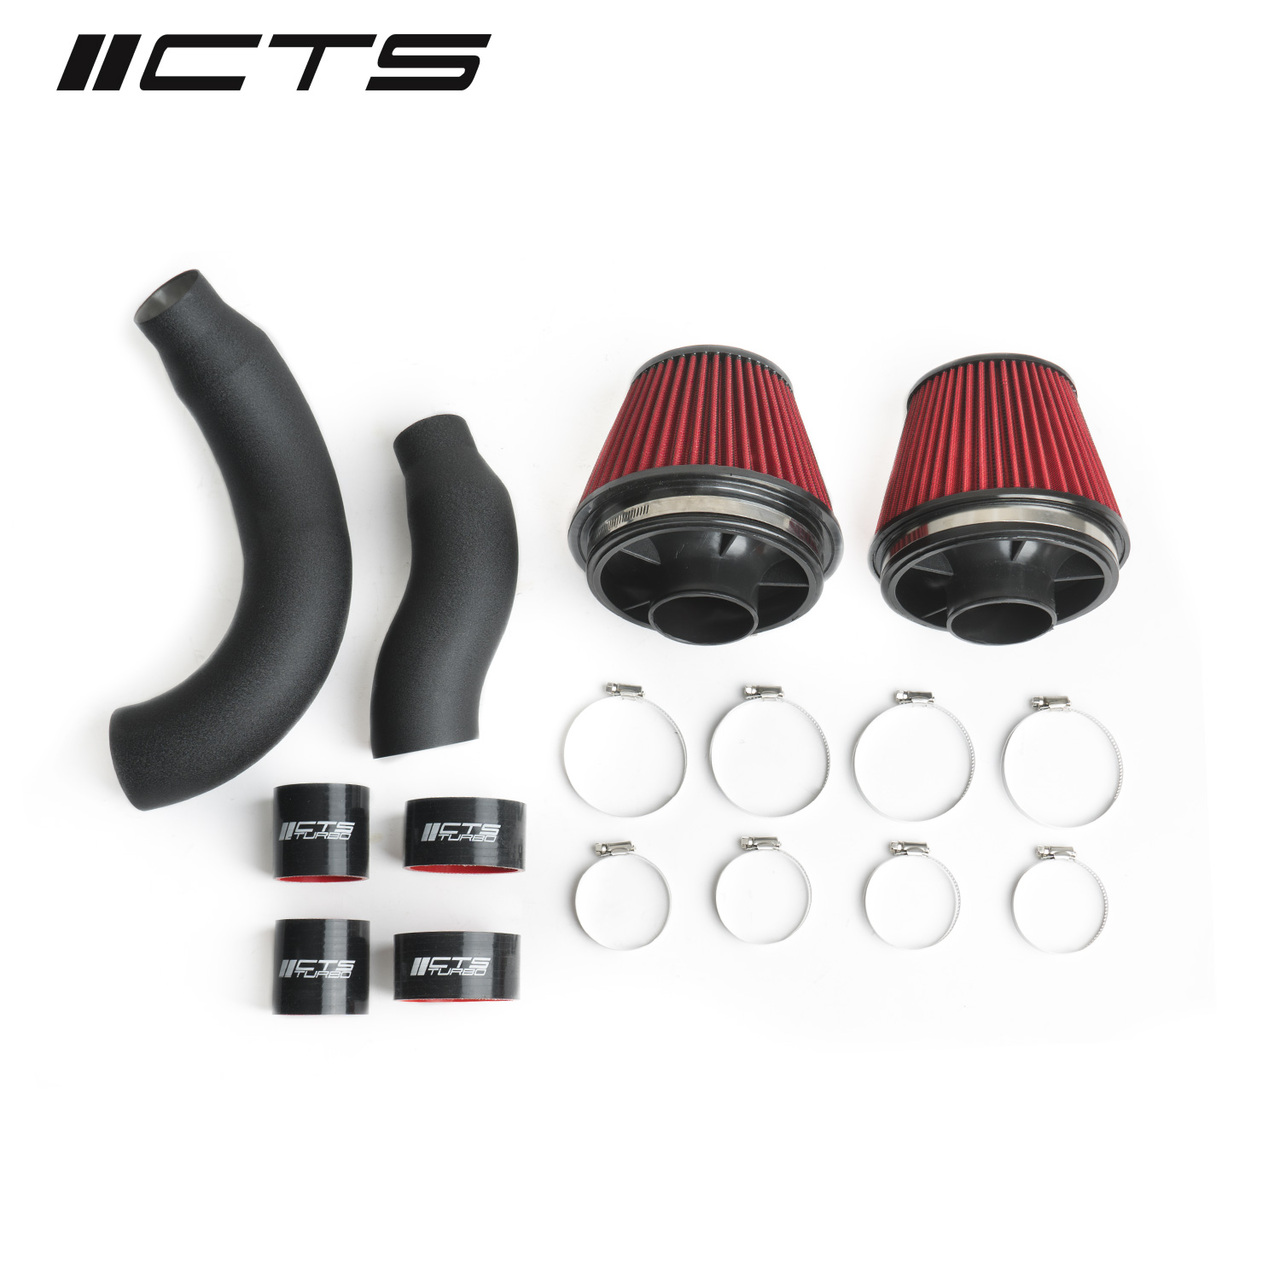 CTS TURBO C7 S6/S7/RS7 DUAL 3″ INTAKE KIT WITH 6″ VELOCITY STACK